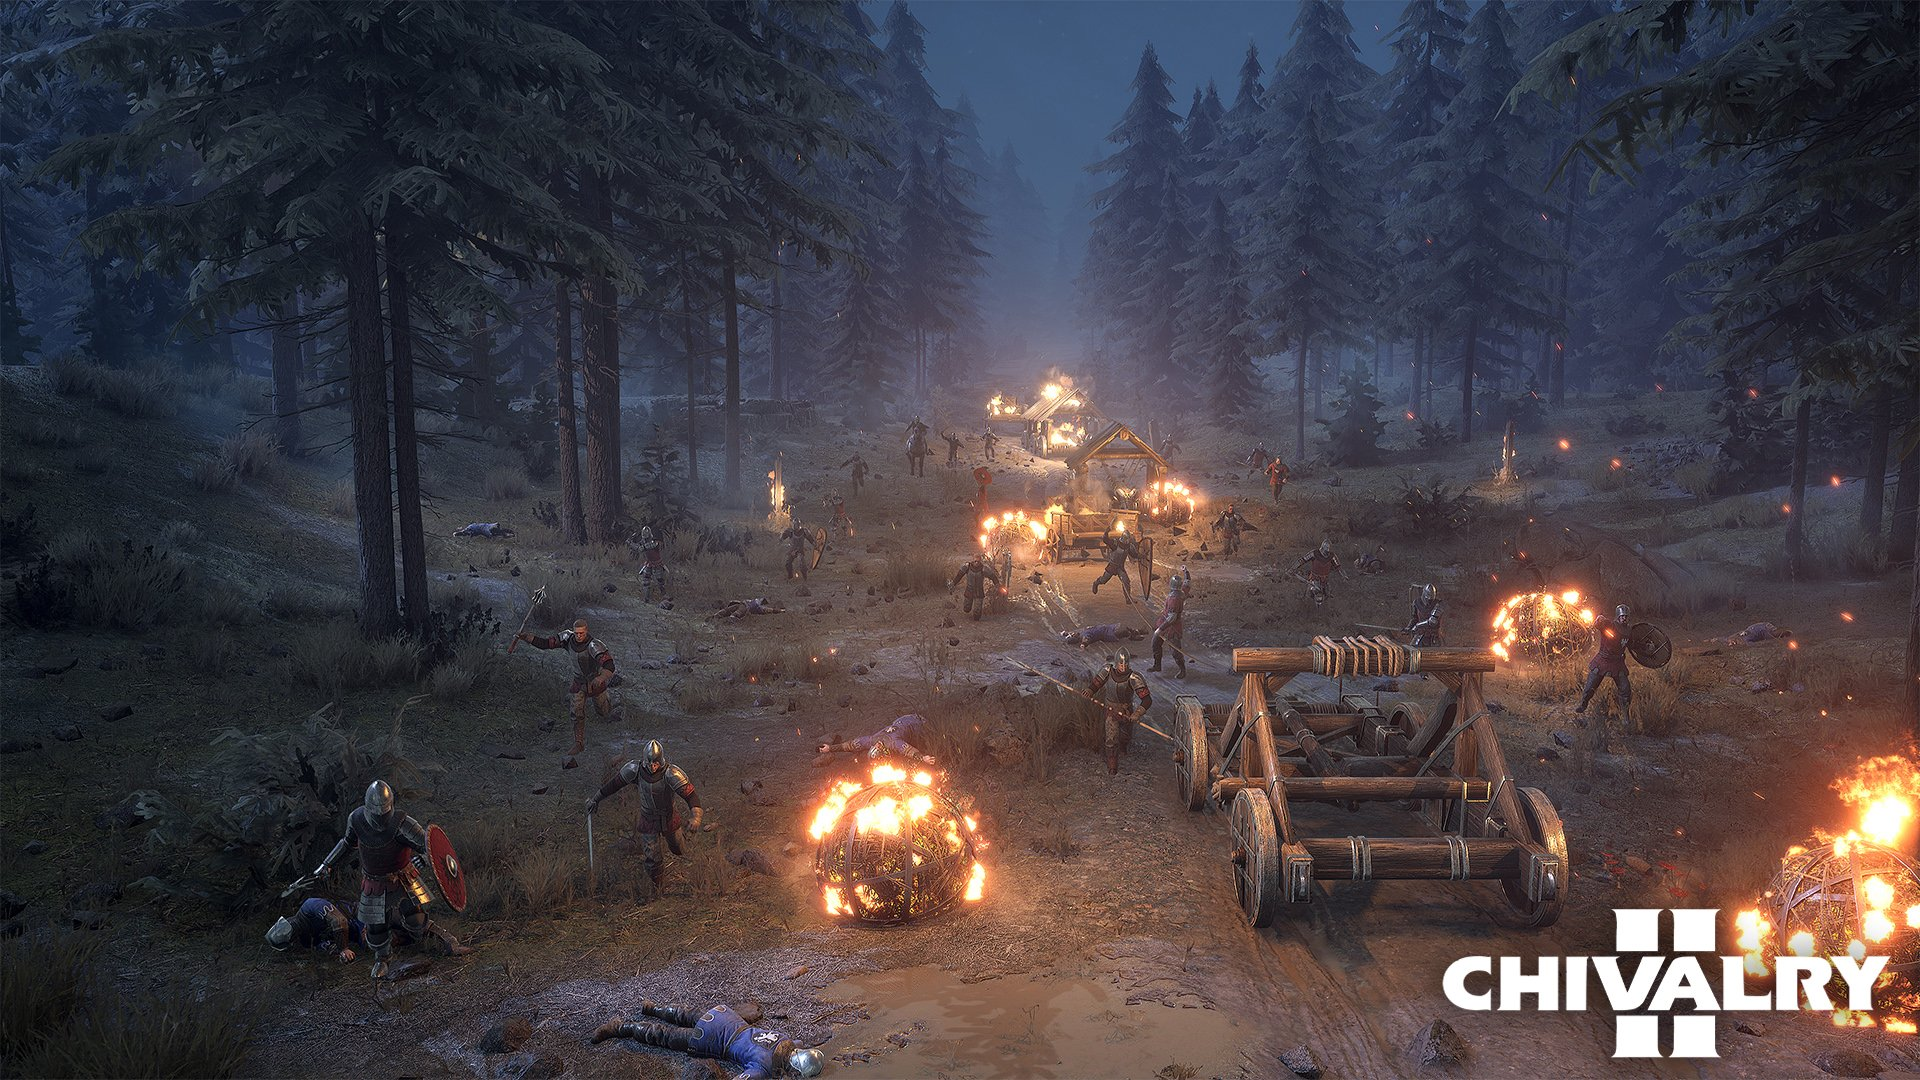 Chivalry 2 - Play the Objective Tip